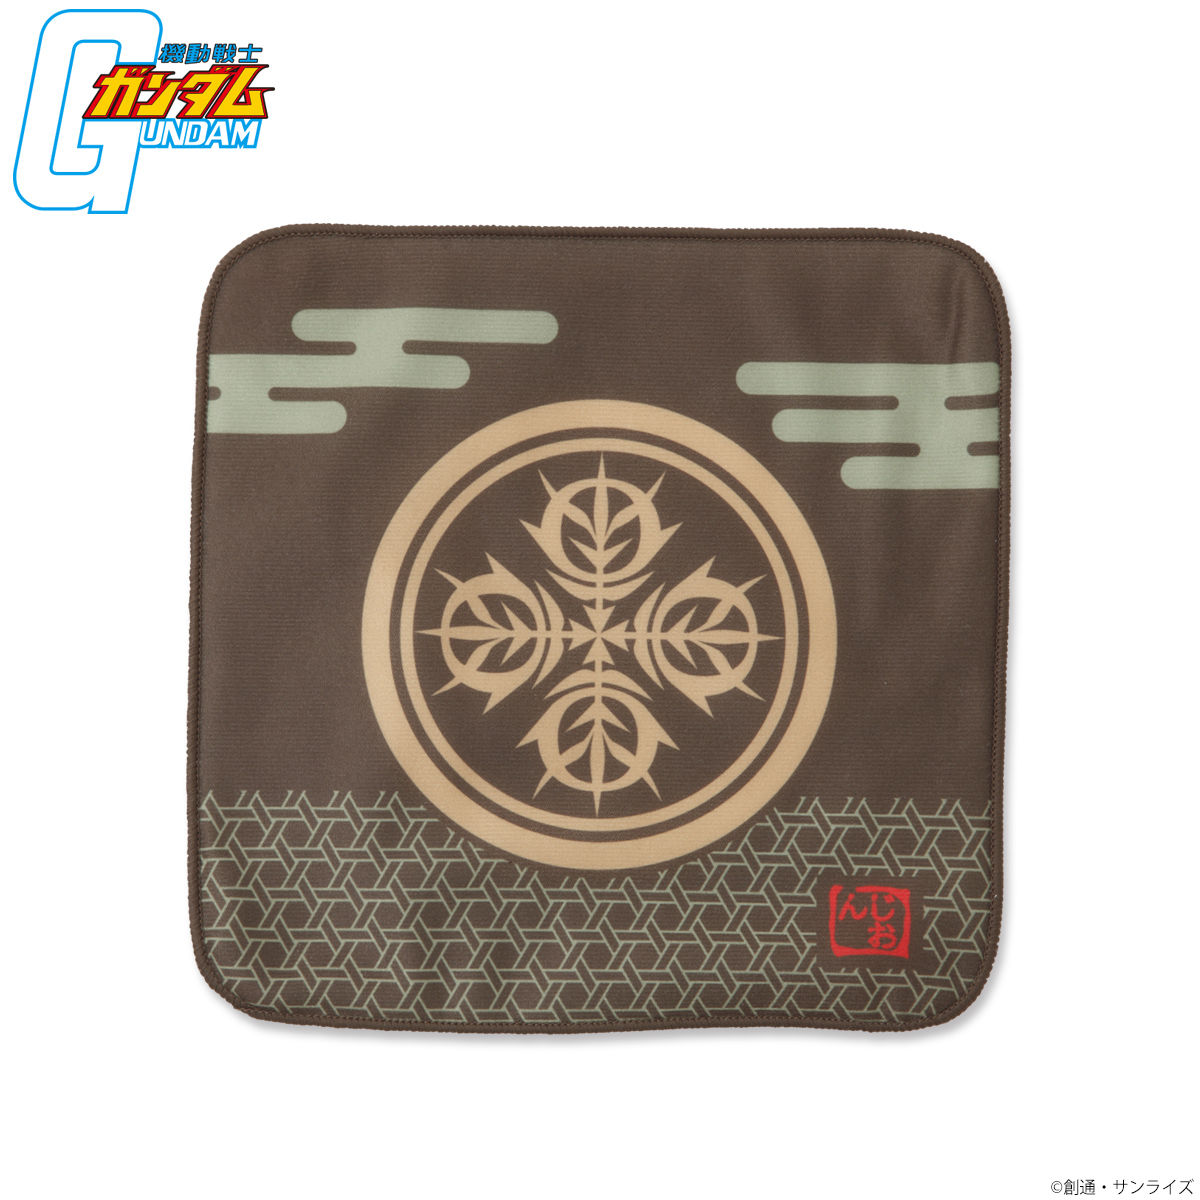 Mobile Suit Gundam Japanese Family Crest Mini Towel